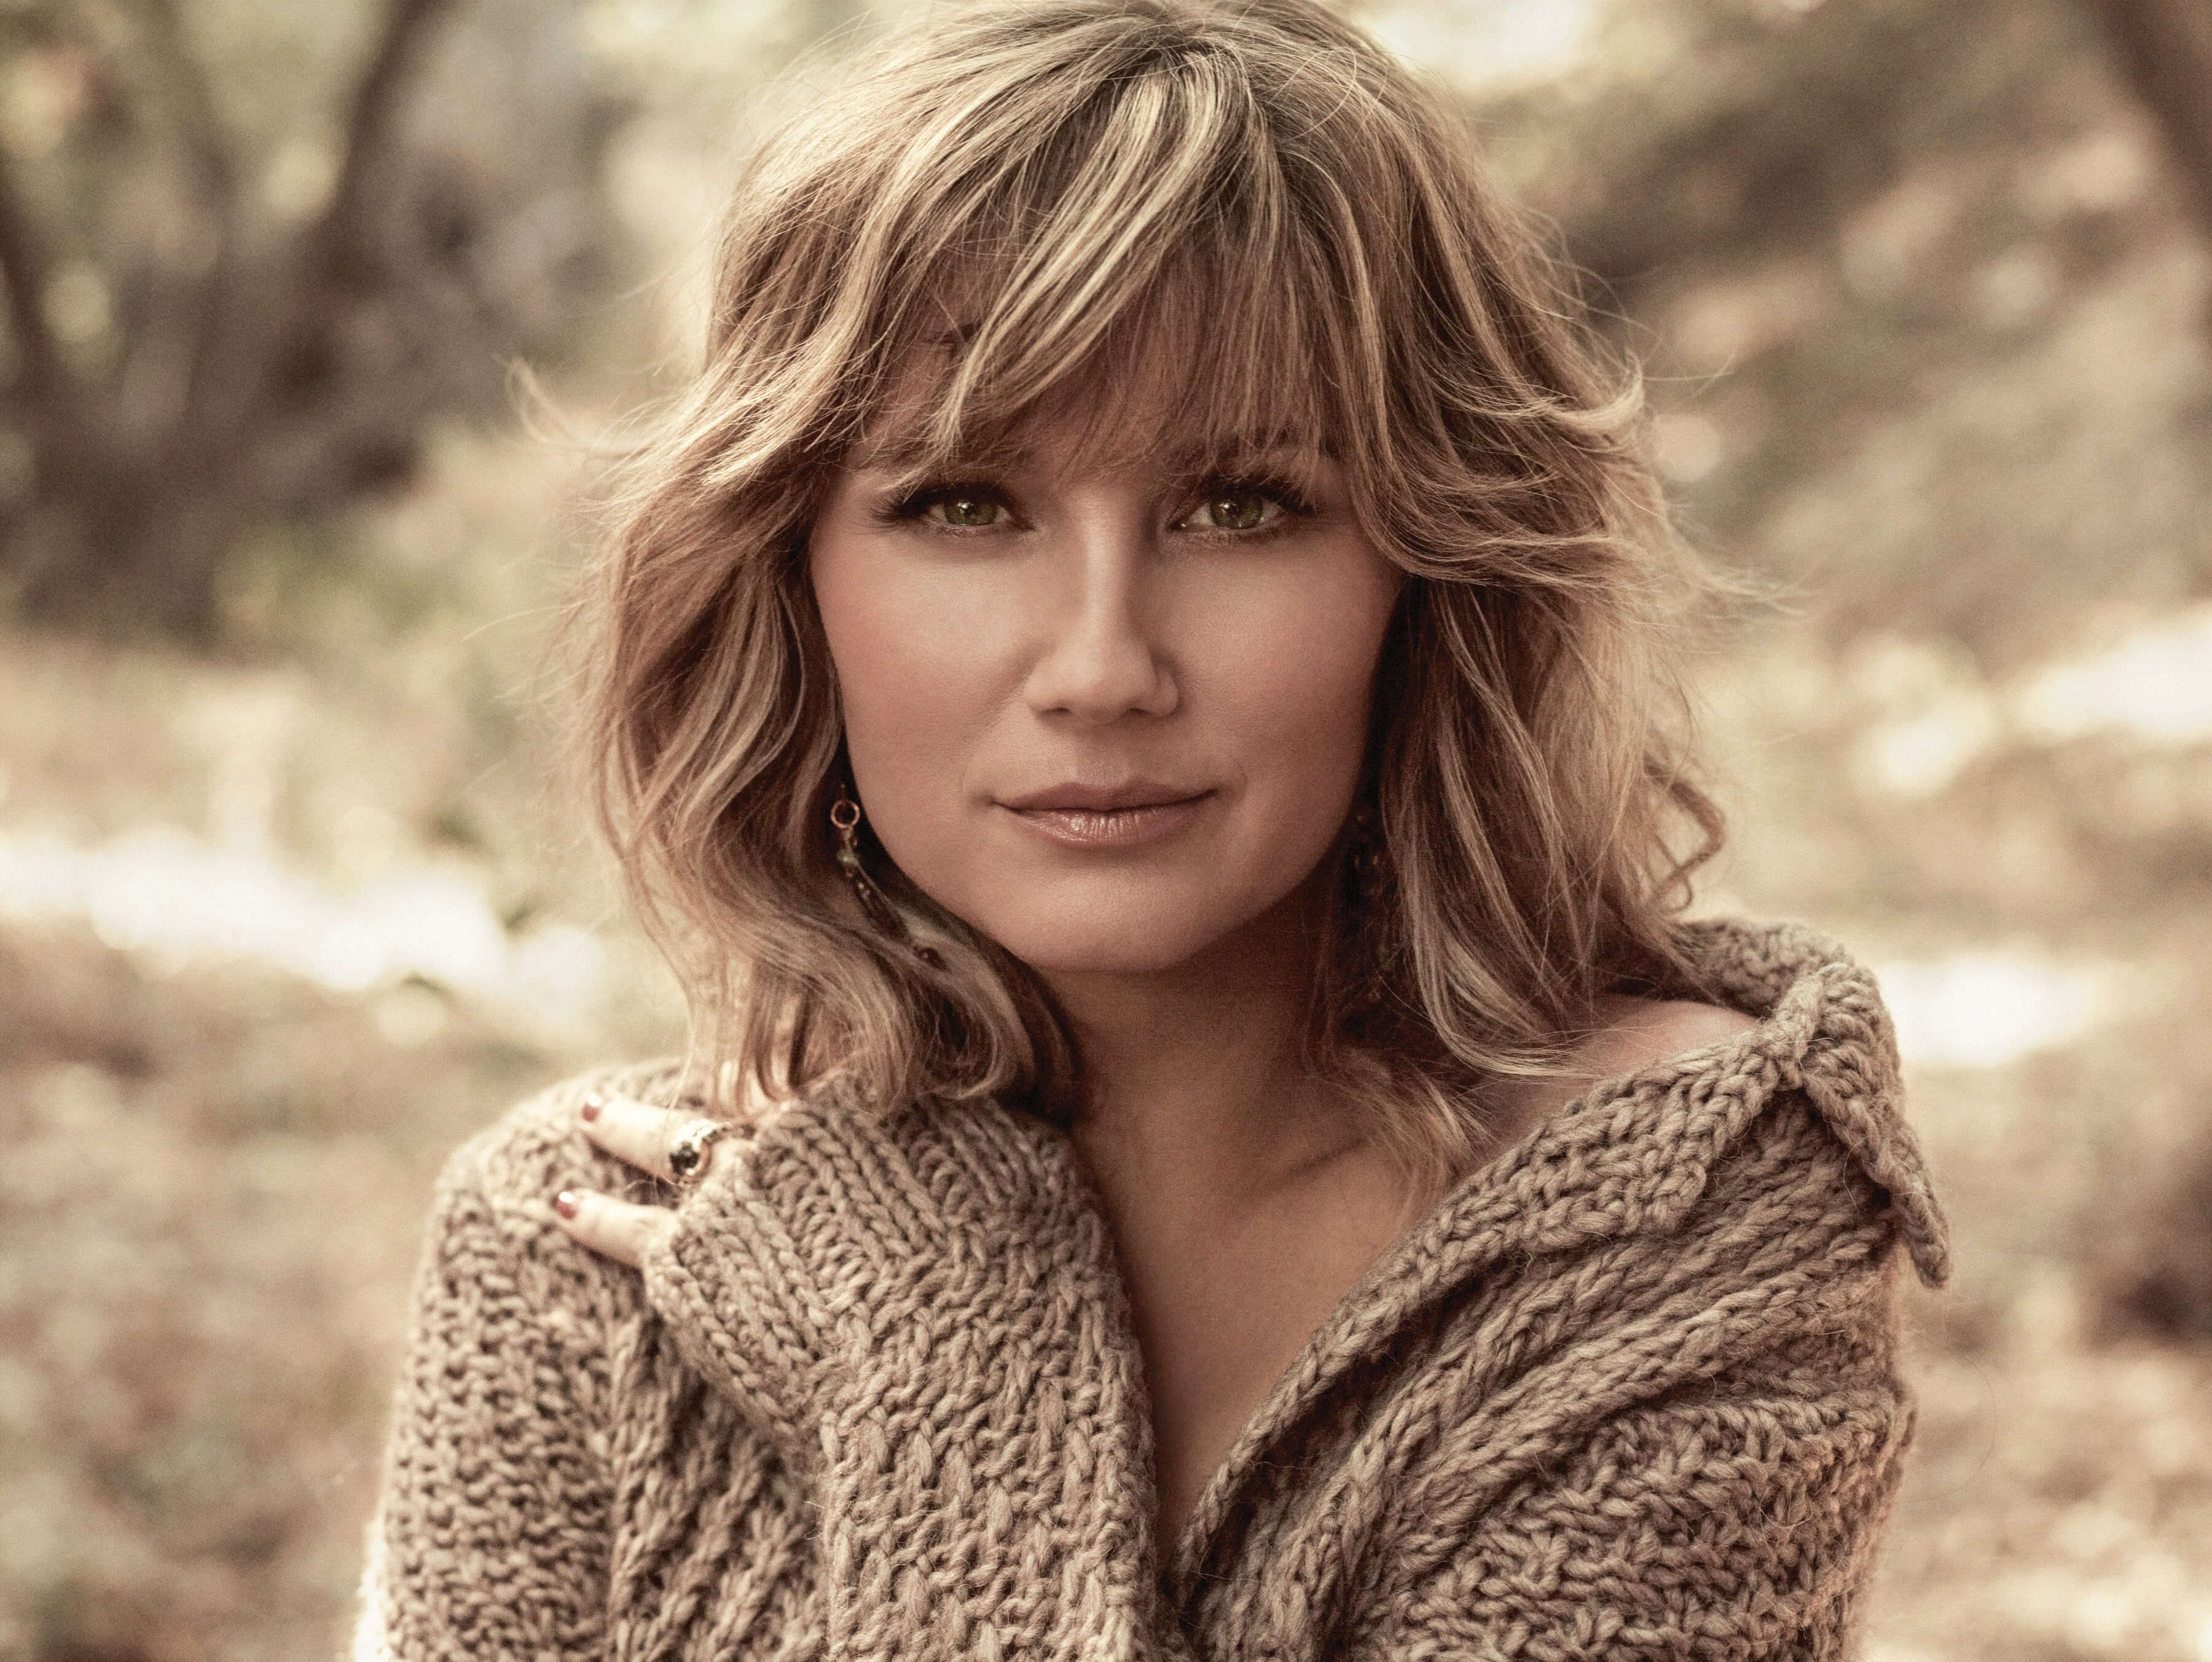 Cafe Nashville News - The latest country music news